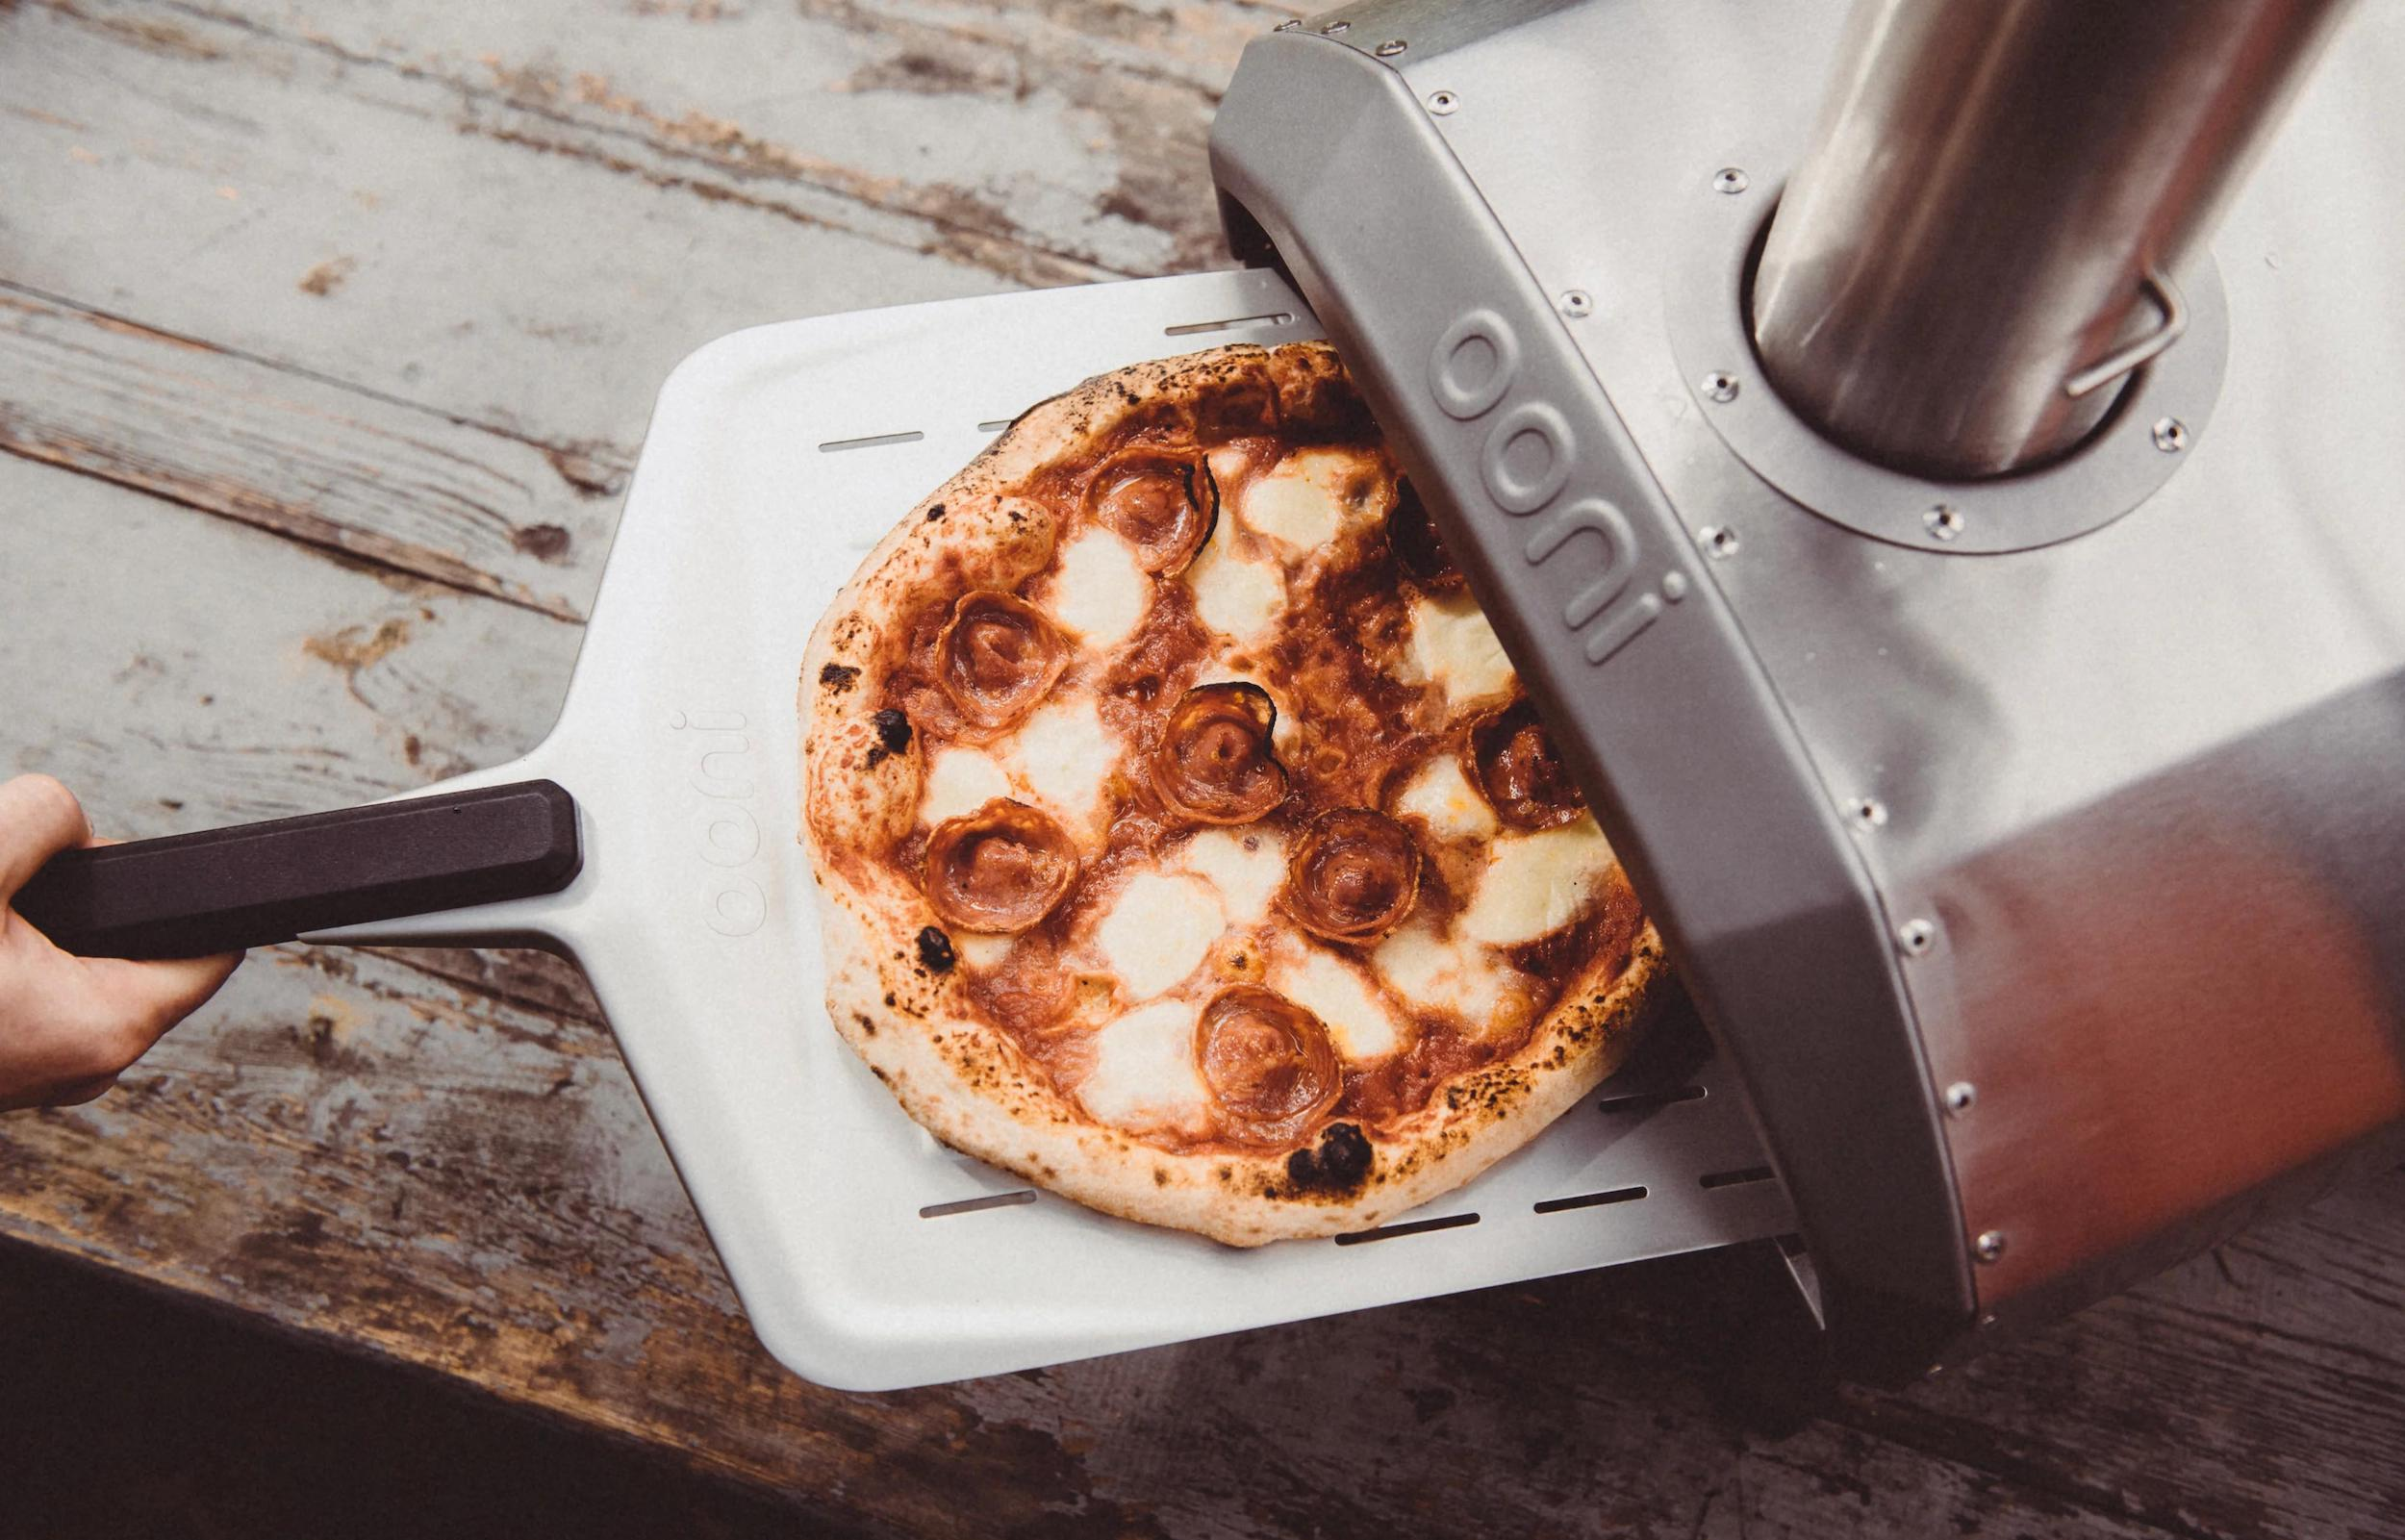 Ooni S Karu Is A Portable Pizza Oven For Great Taste Anywhere